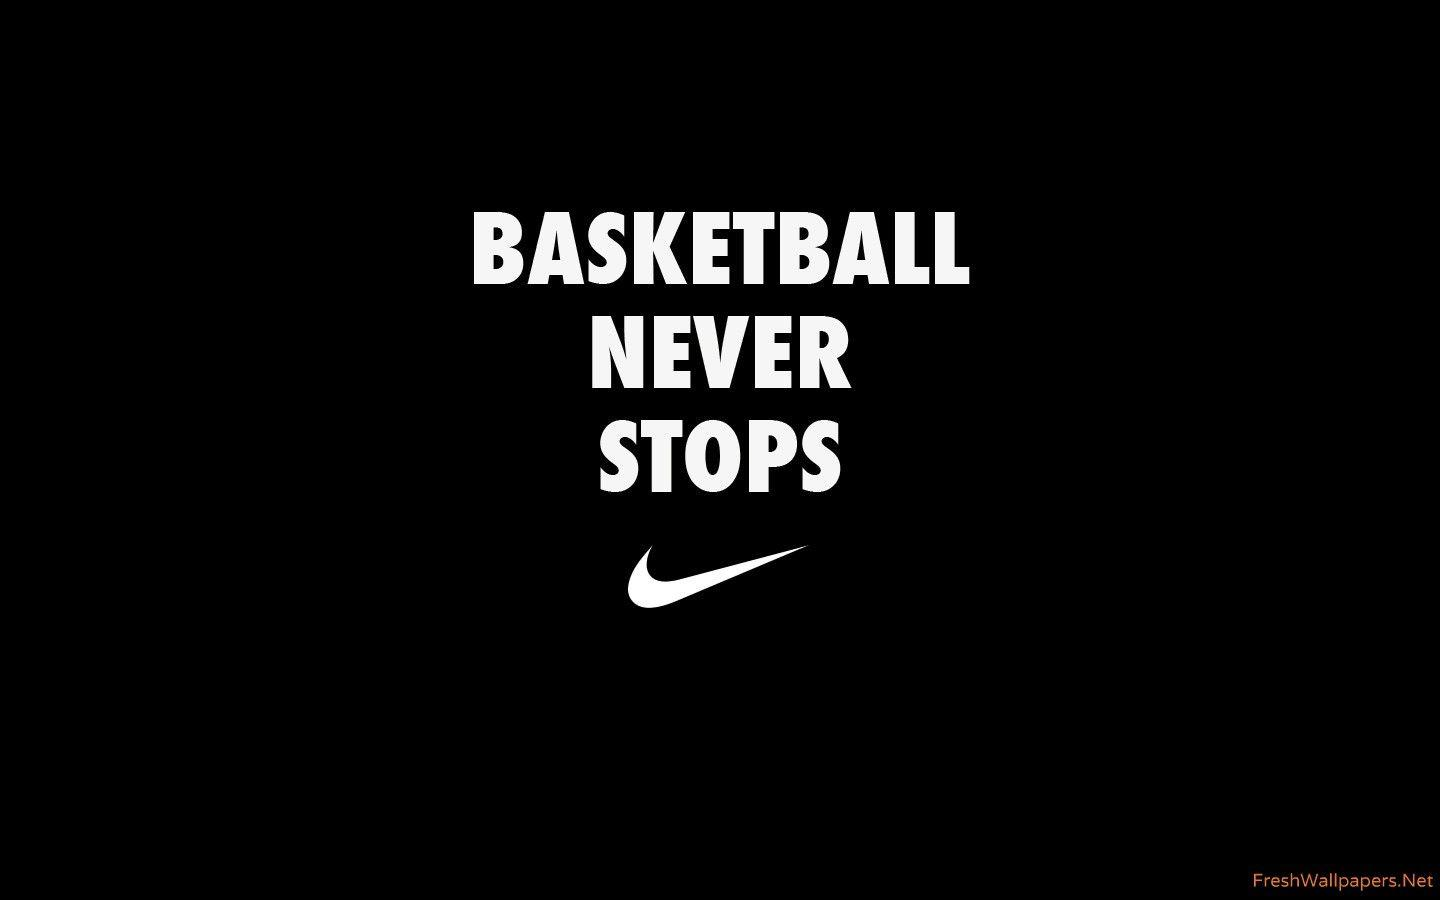 Basketball Never Stops wallpapers